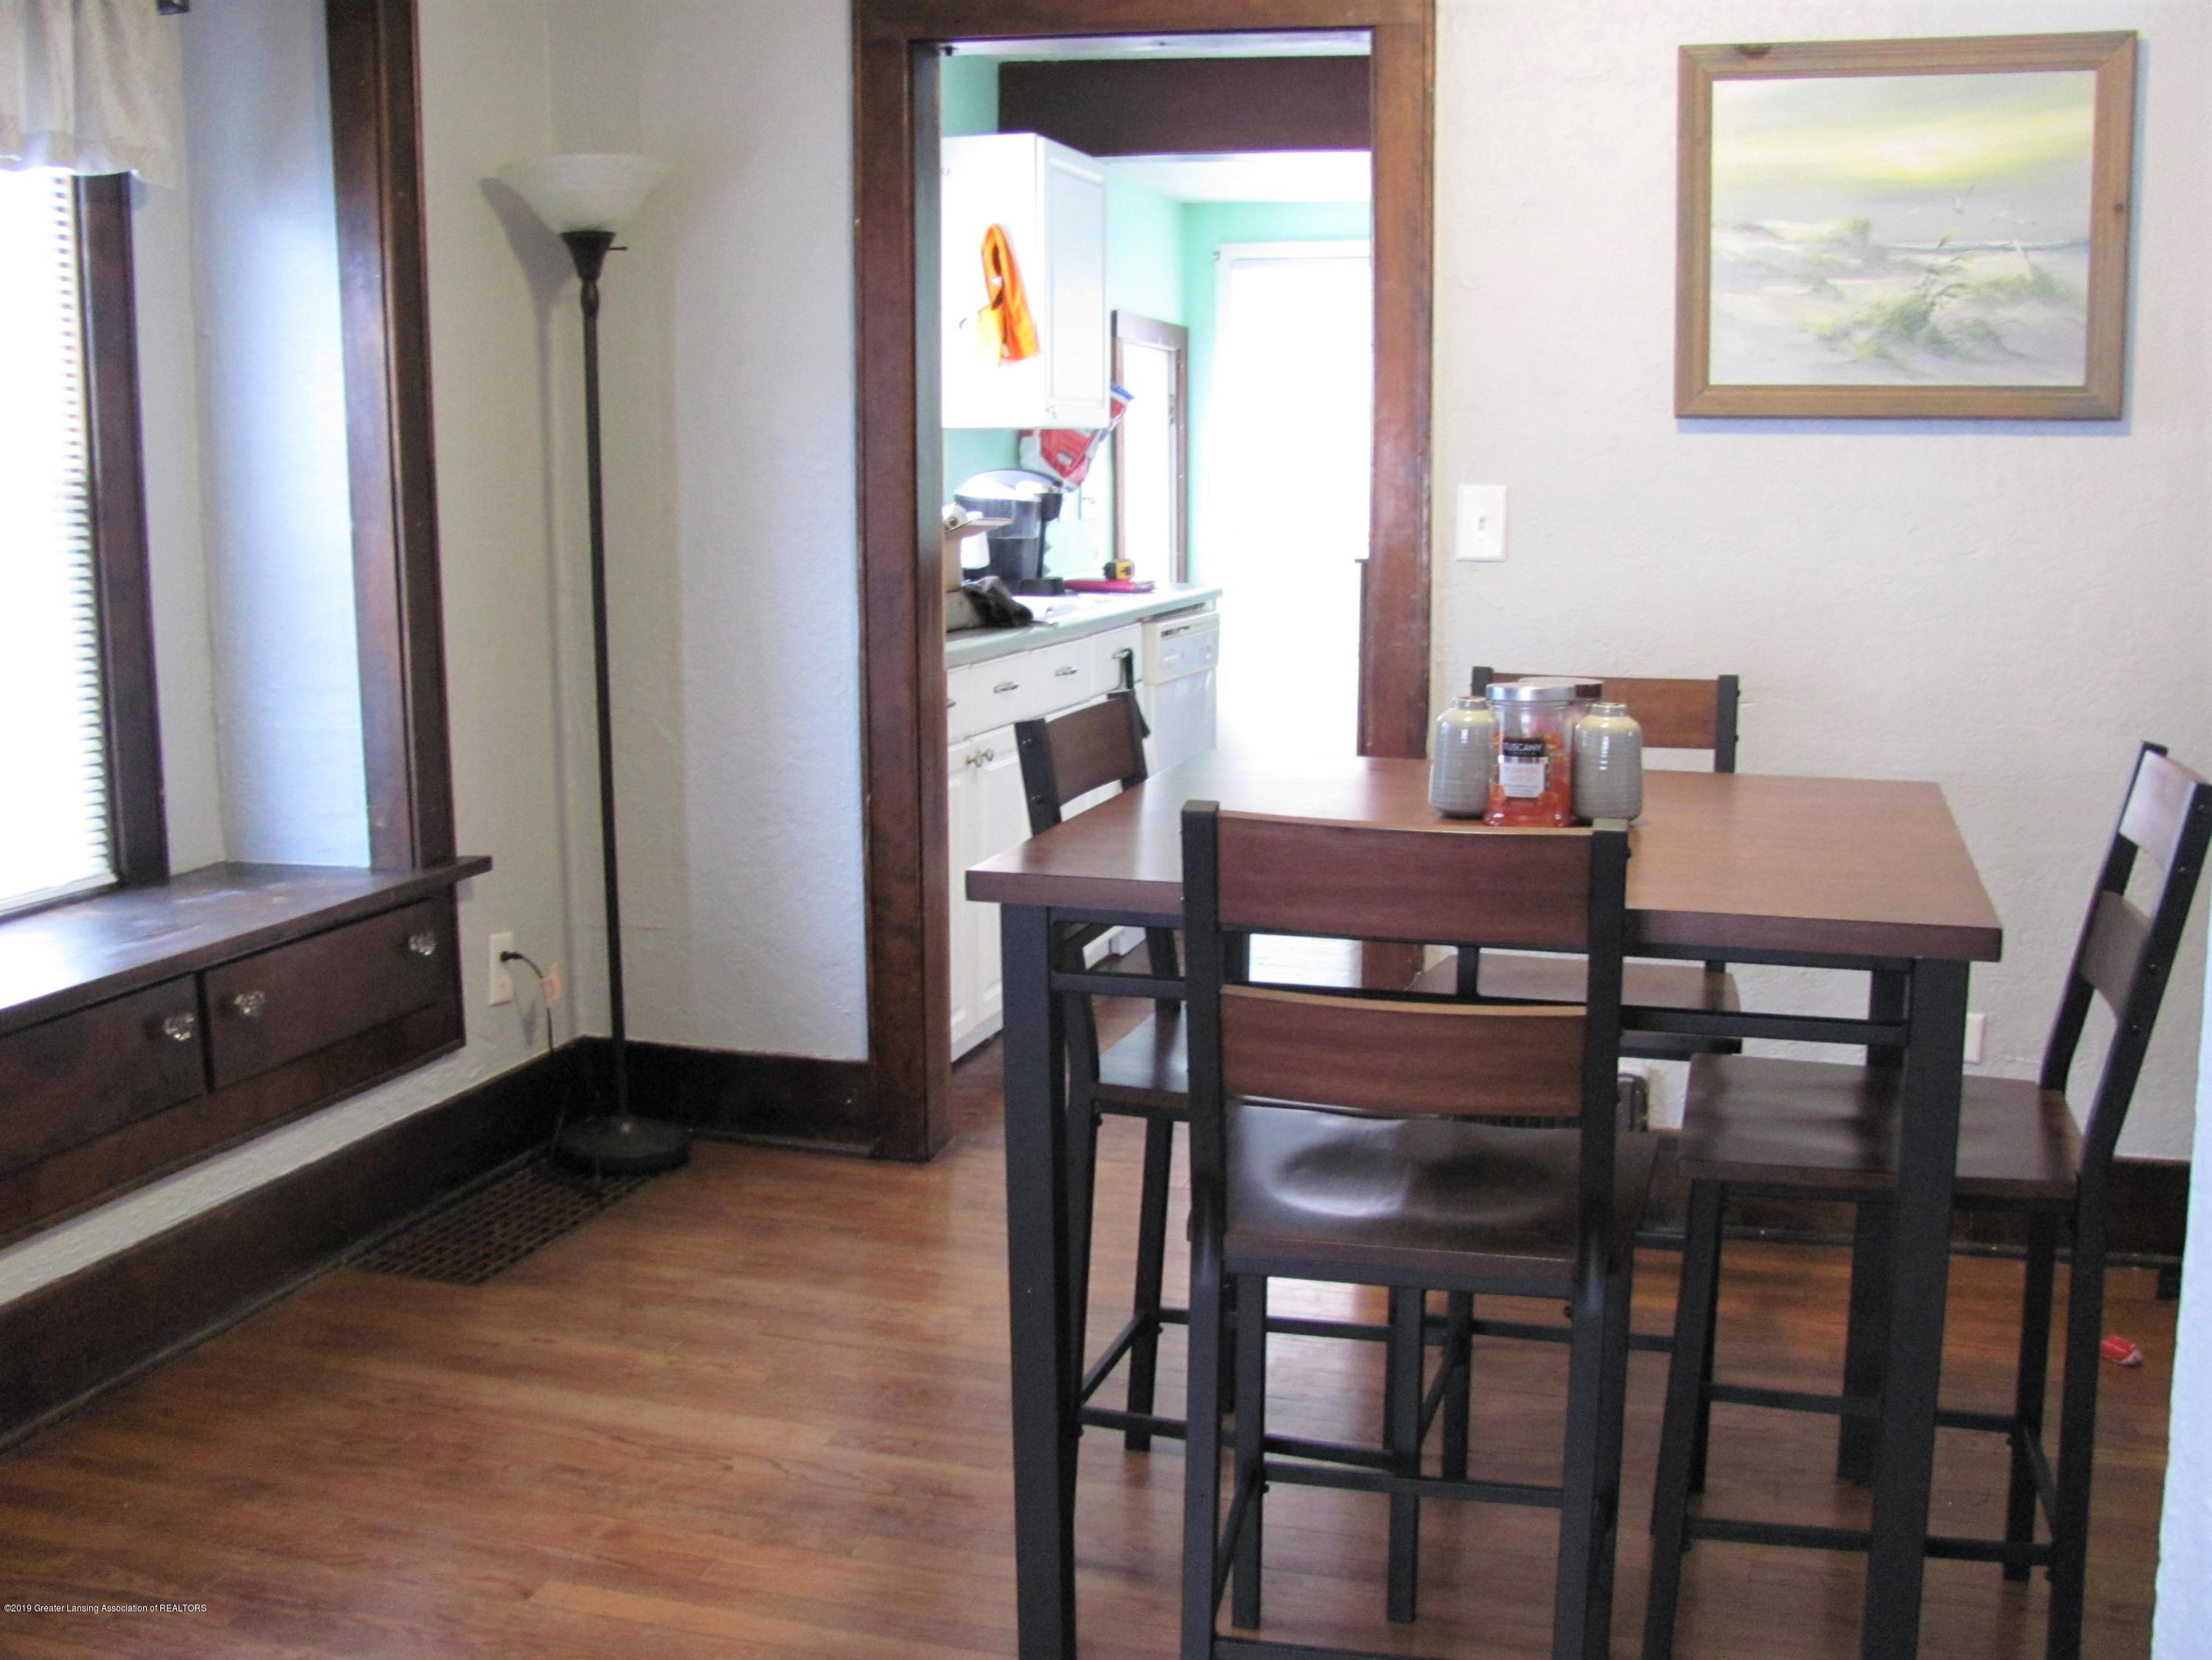 629 N Fairview Ave - Dining room - 16